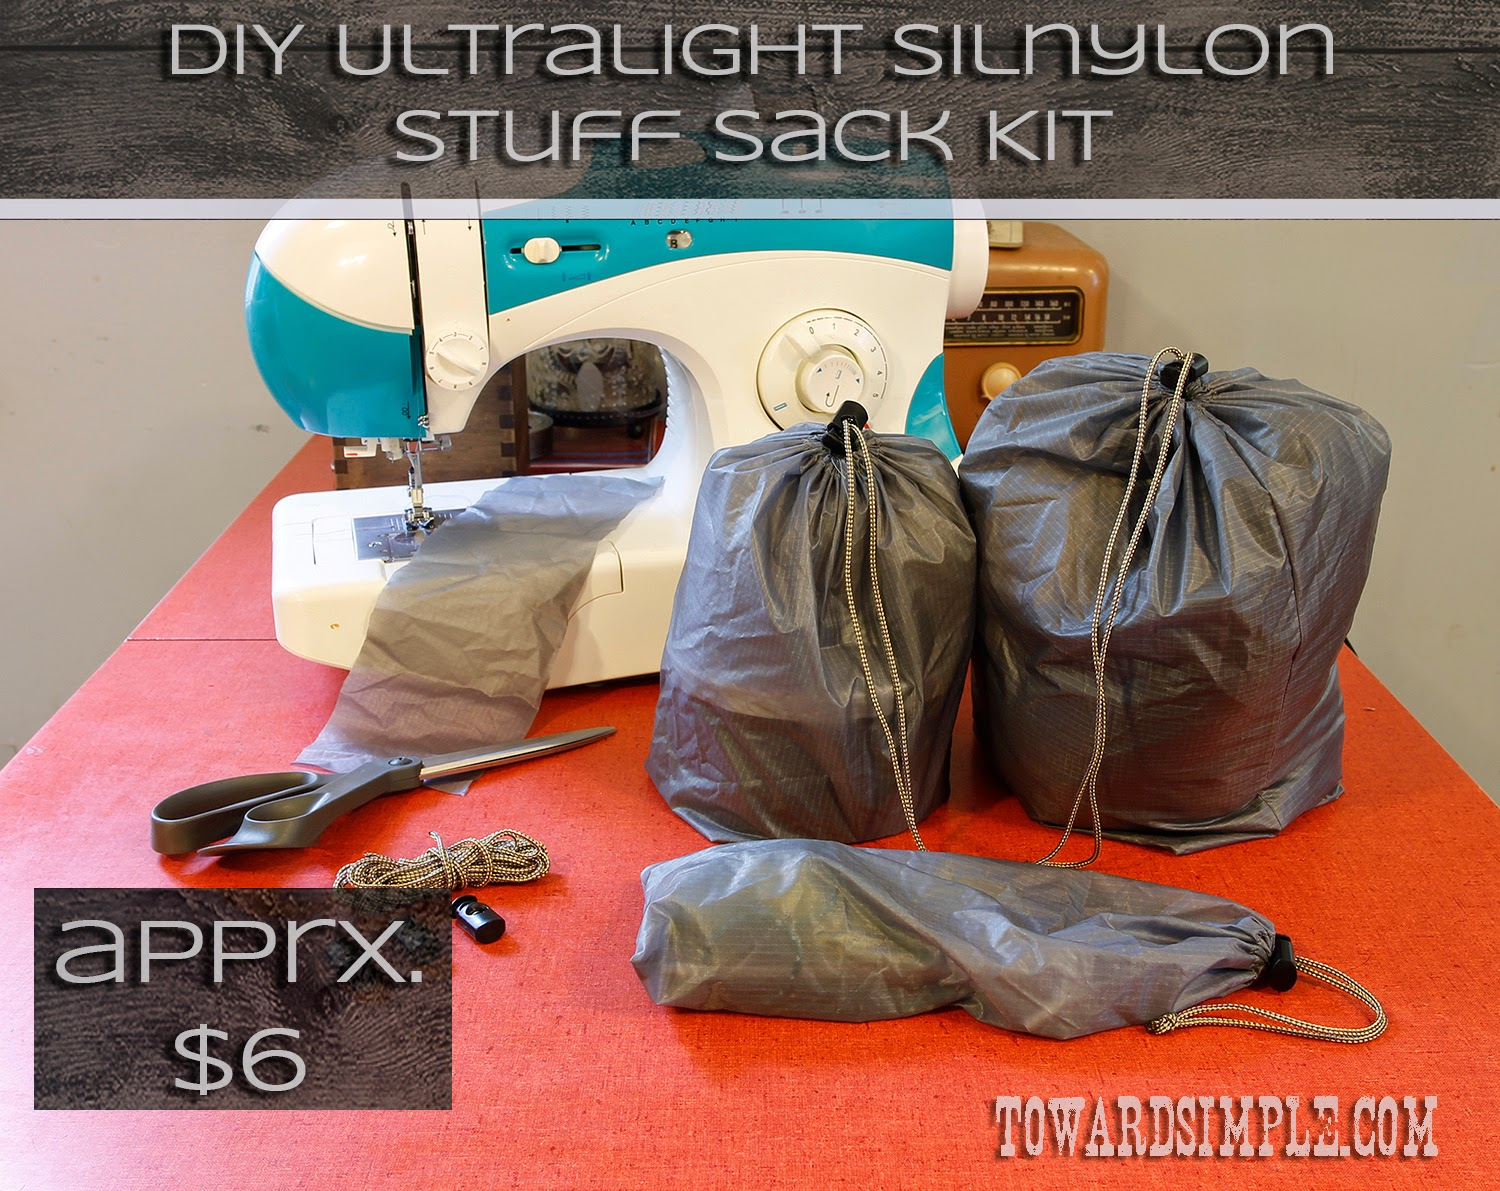 Sewing silnylon stuff sacks ultralight